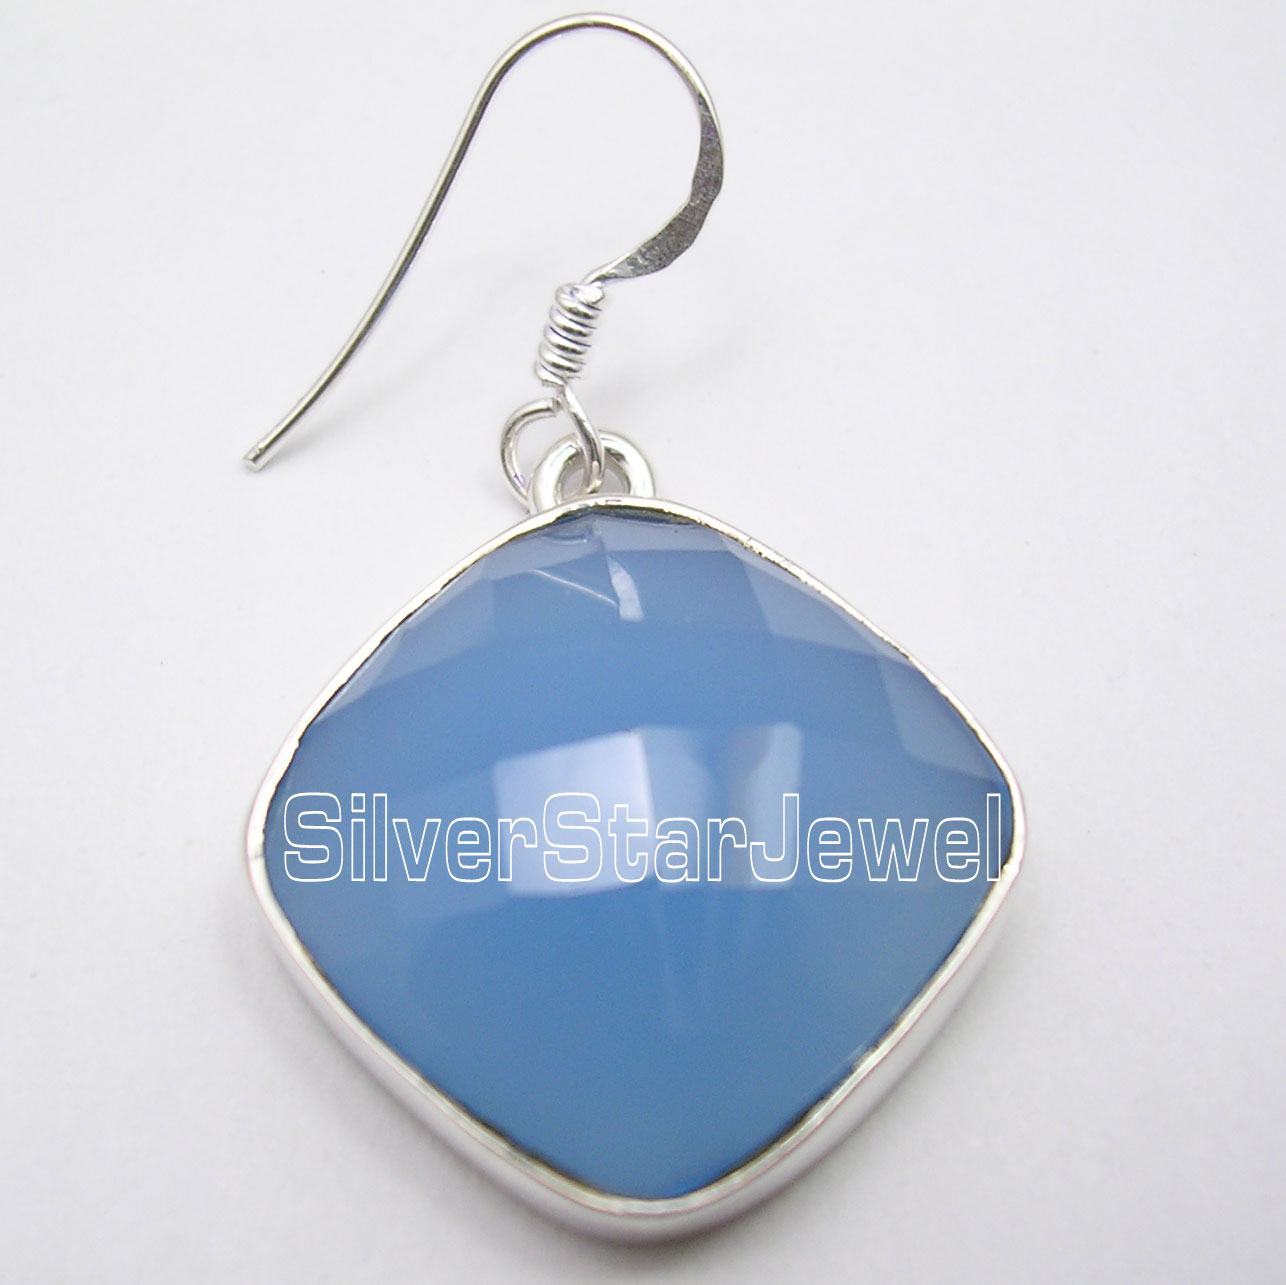 SQUARE CUT CHALCEDONY Gemstone Earrings 1.6 Inches 925 Solid Silver 13.6 Grams